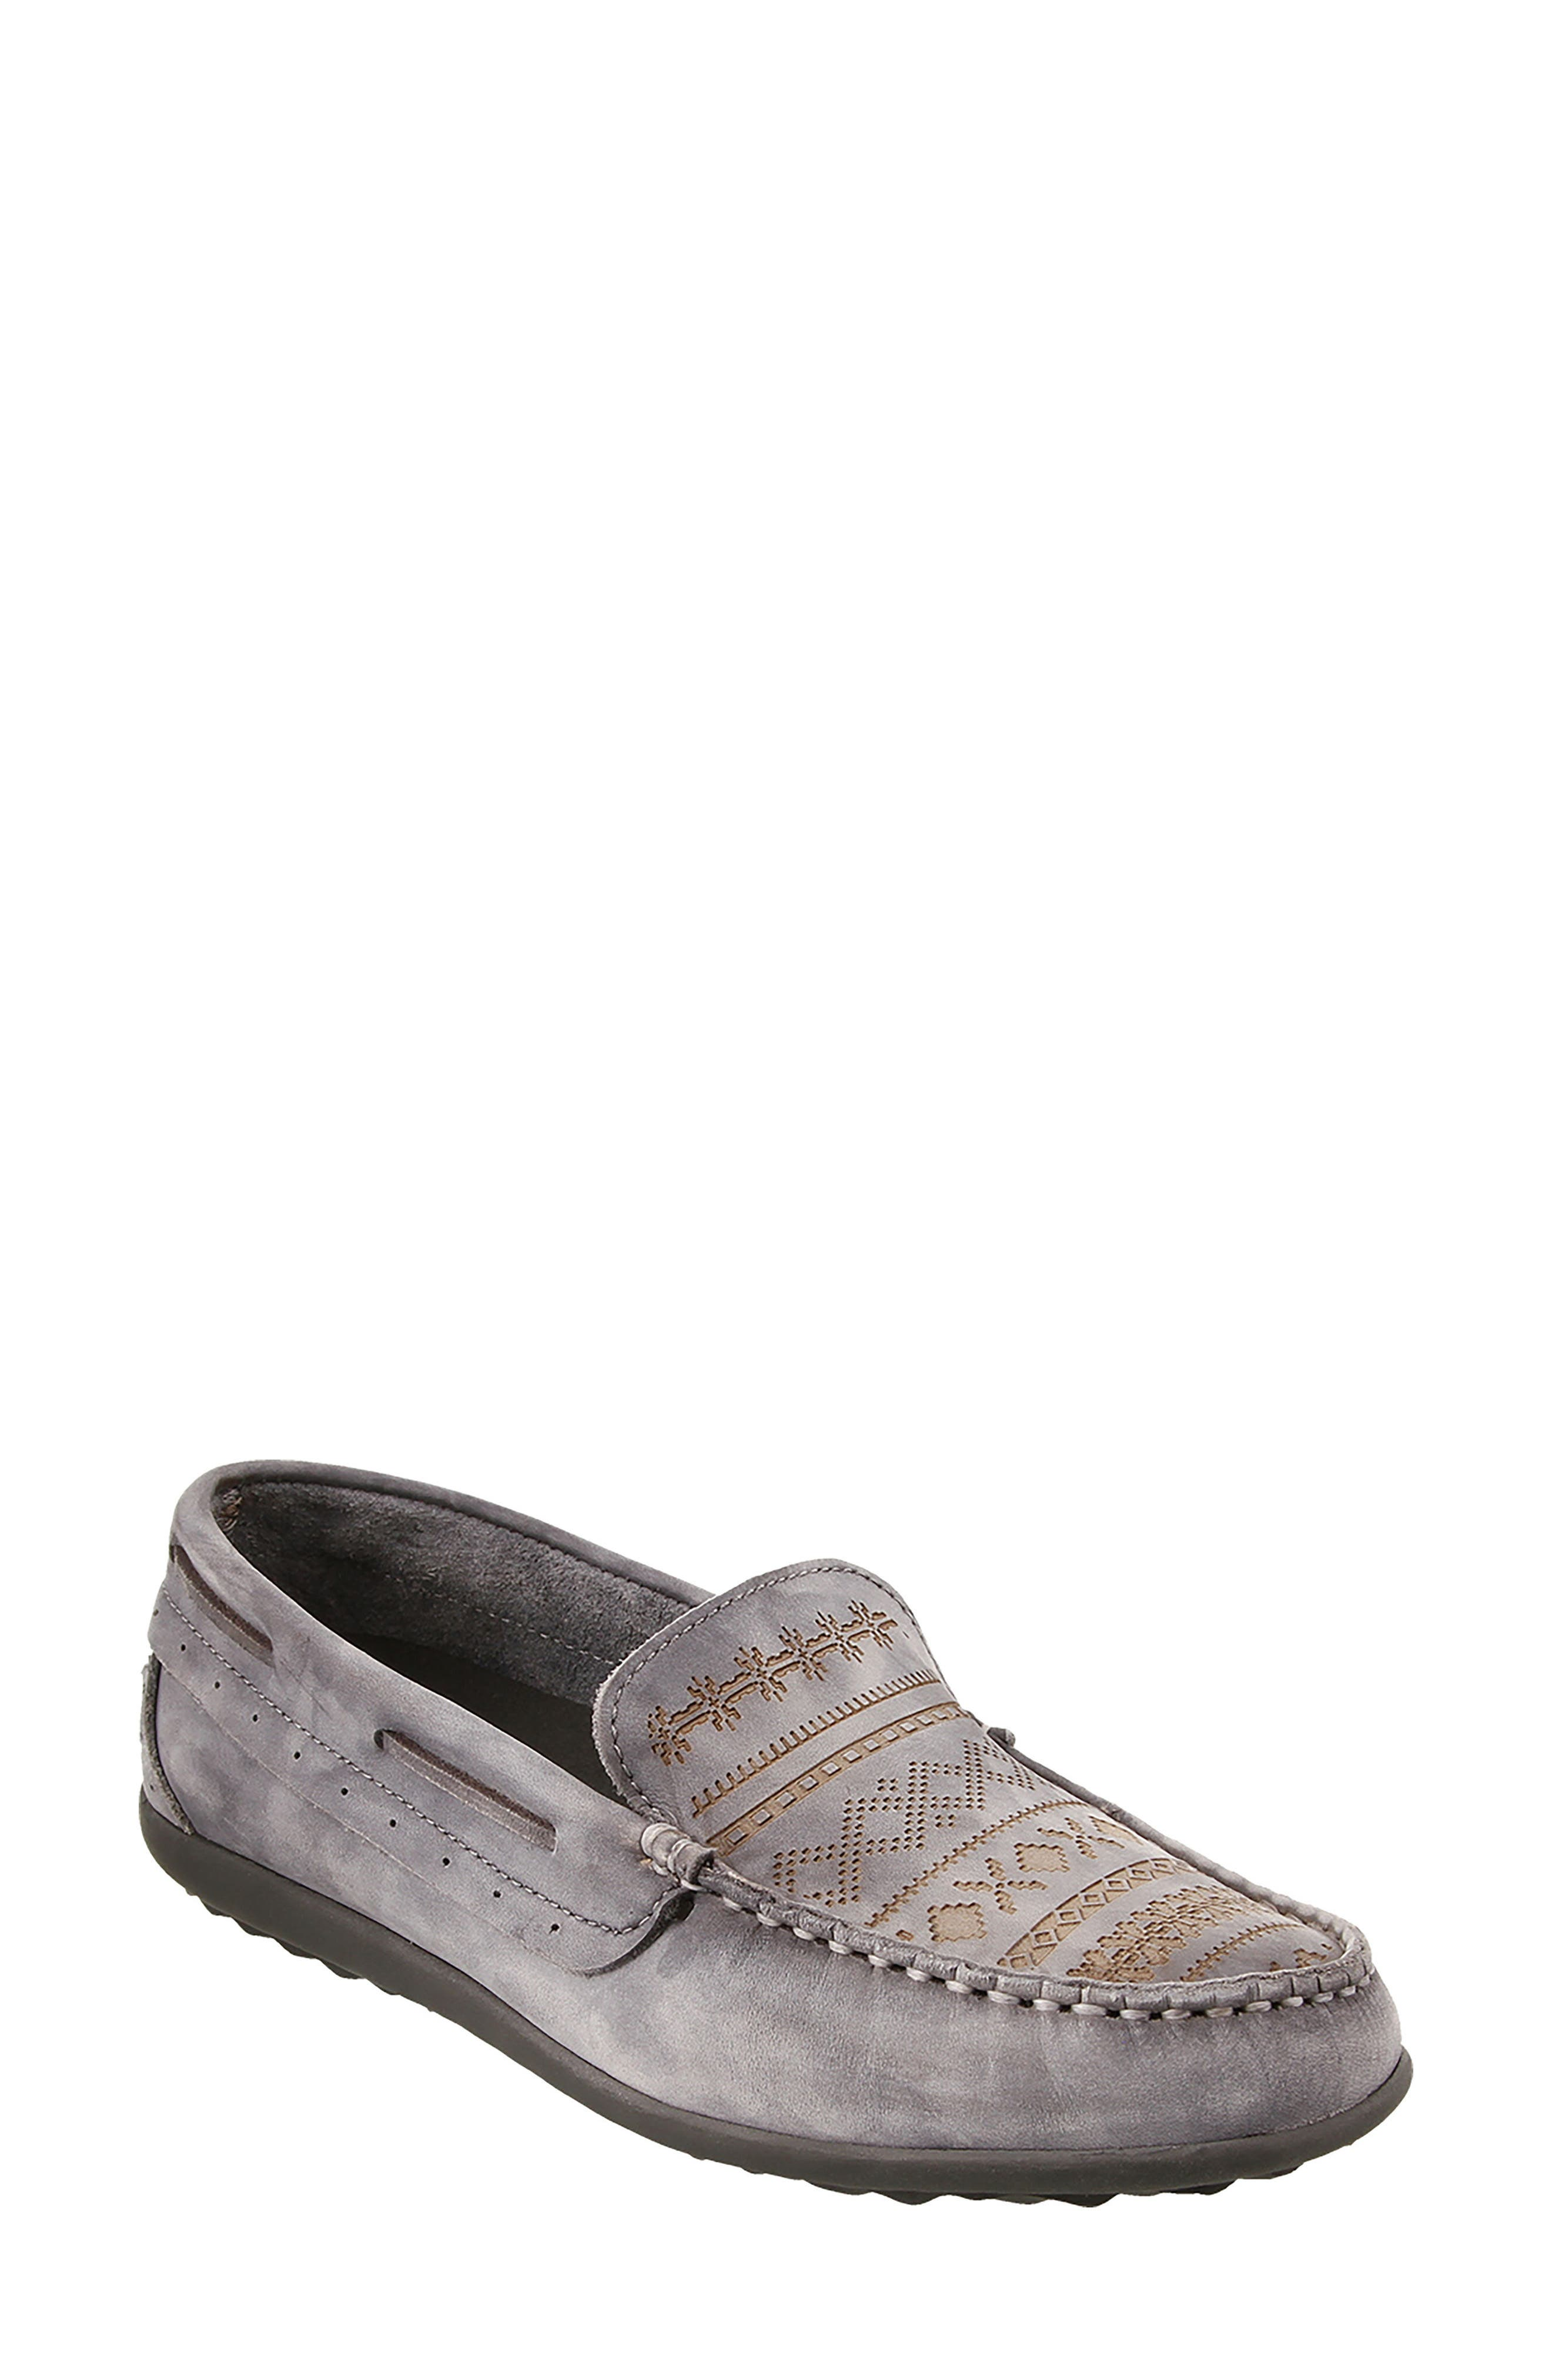 Heritage Moccasin Flat,                         Main,                         color, STEEL GREY LEATHER